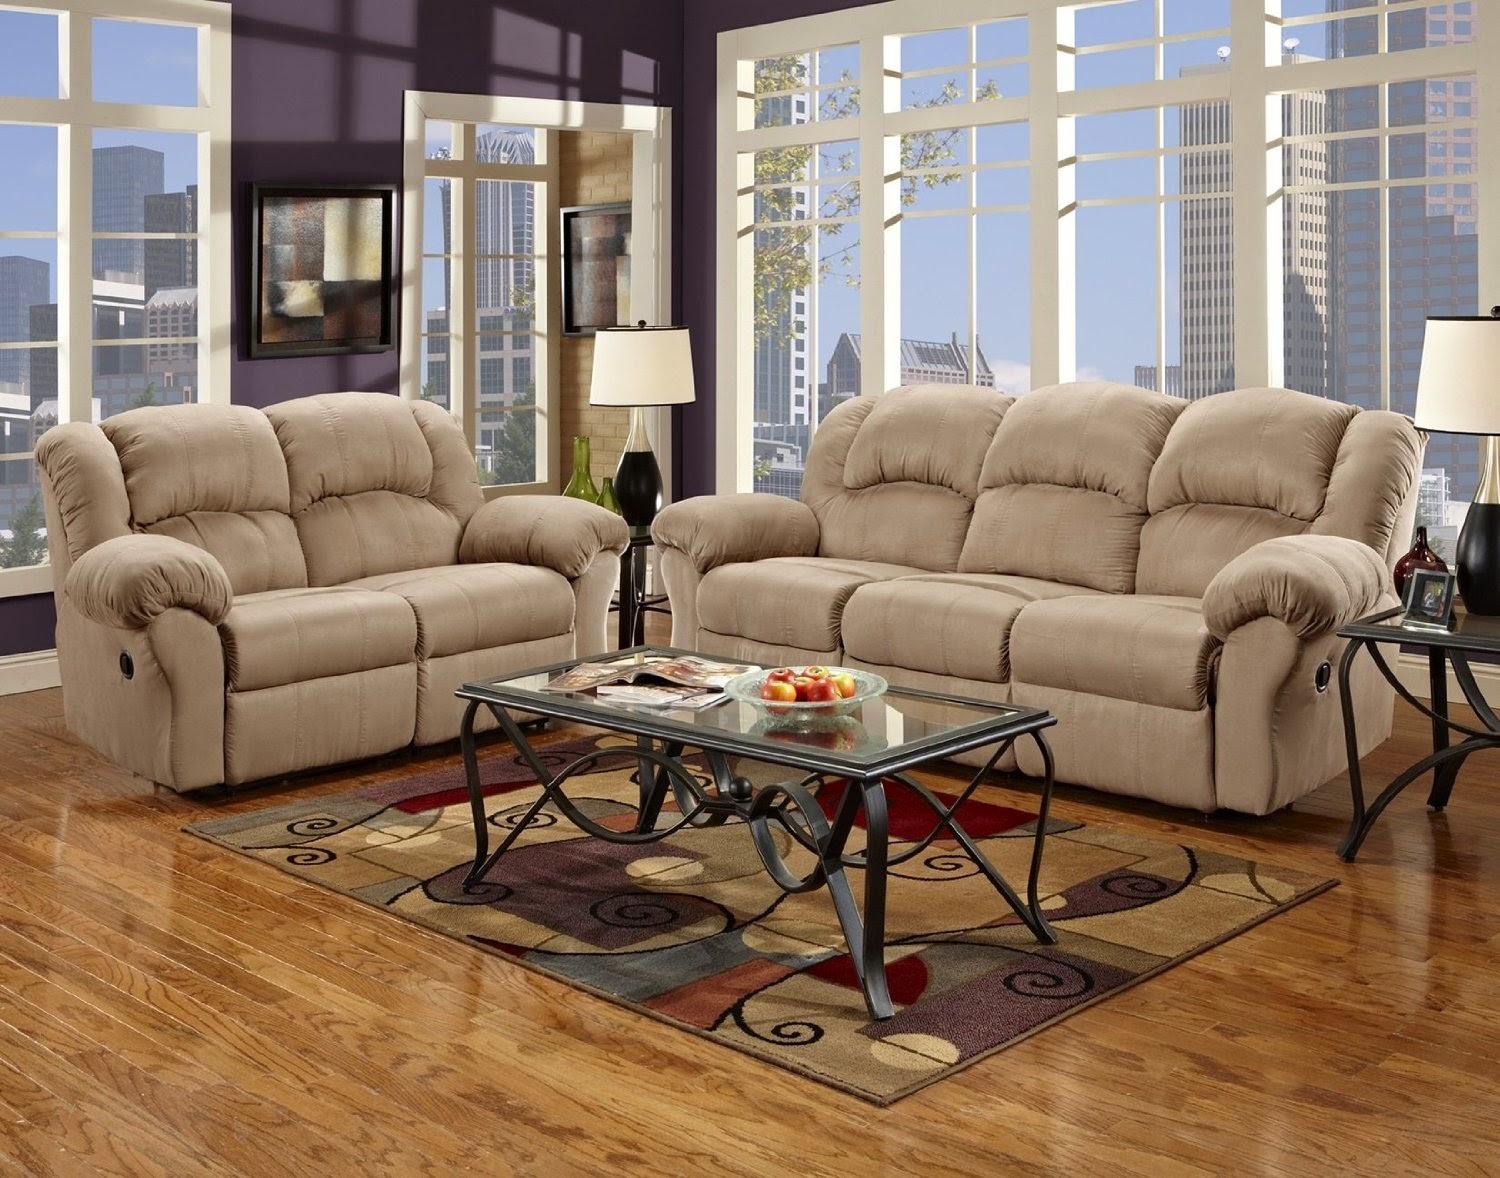 Microfiber Reclining Sofa Loveseat Set